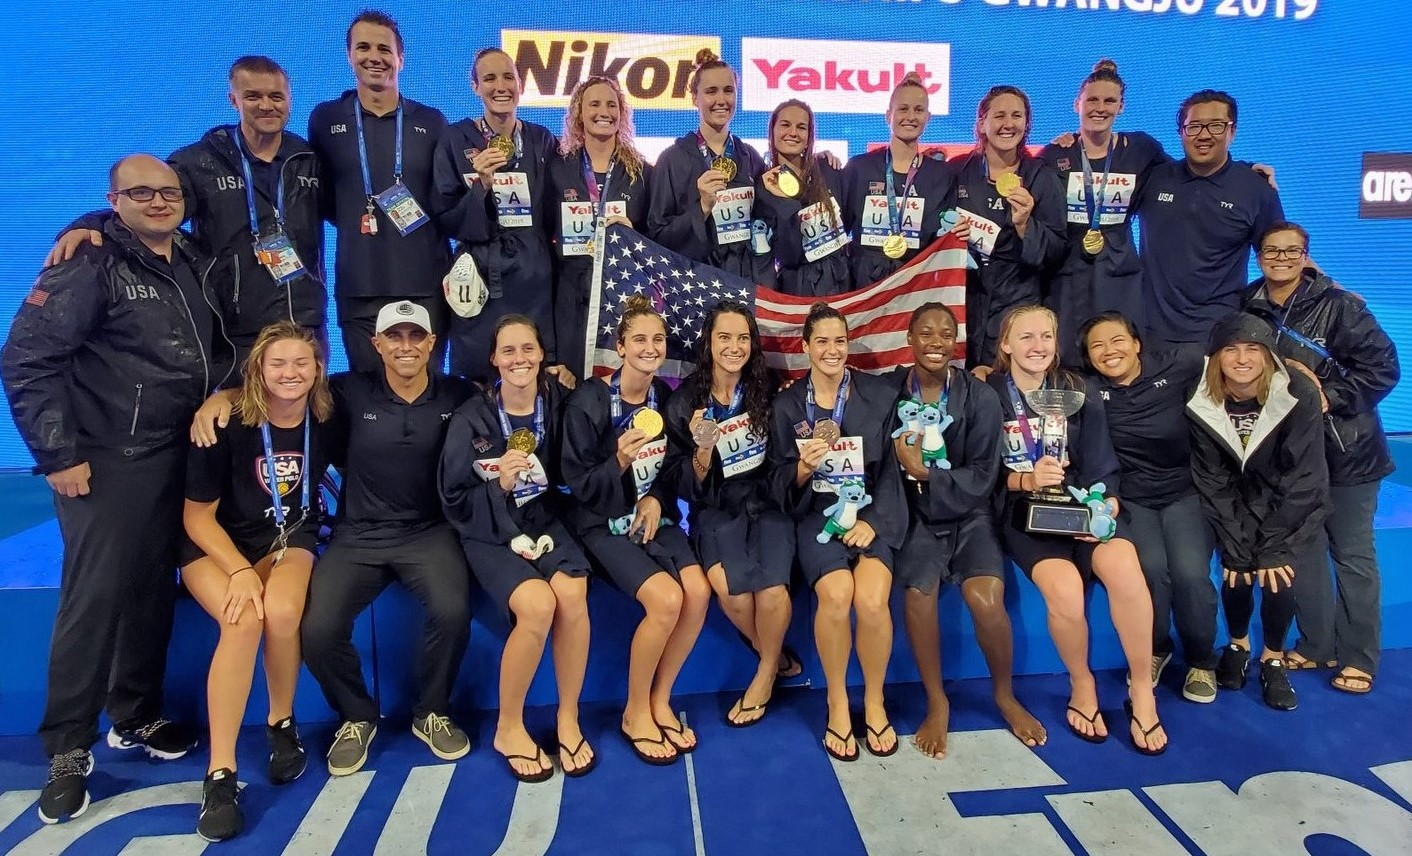 USA - World Champion Women, Gwangju 2019